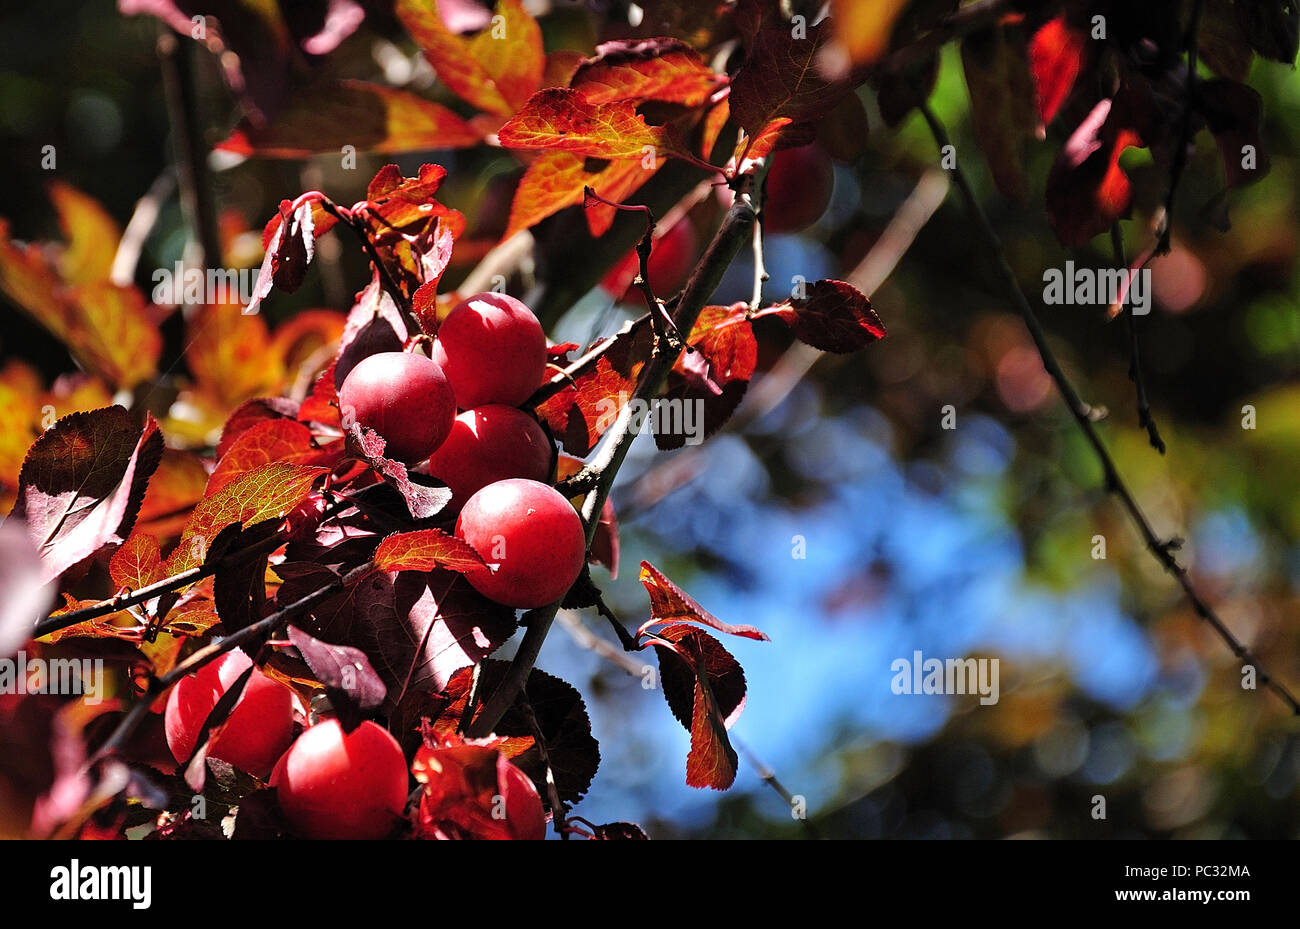 Ripe Fruits Of A Wild Cherry Plum Tree With Red Leaves In Summer